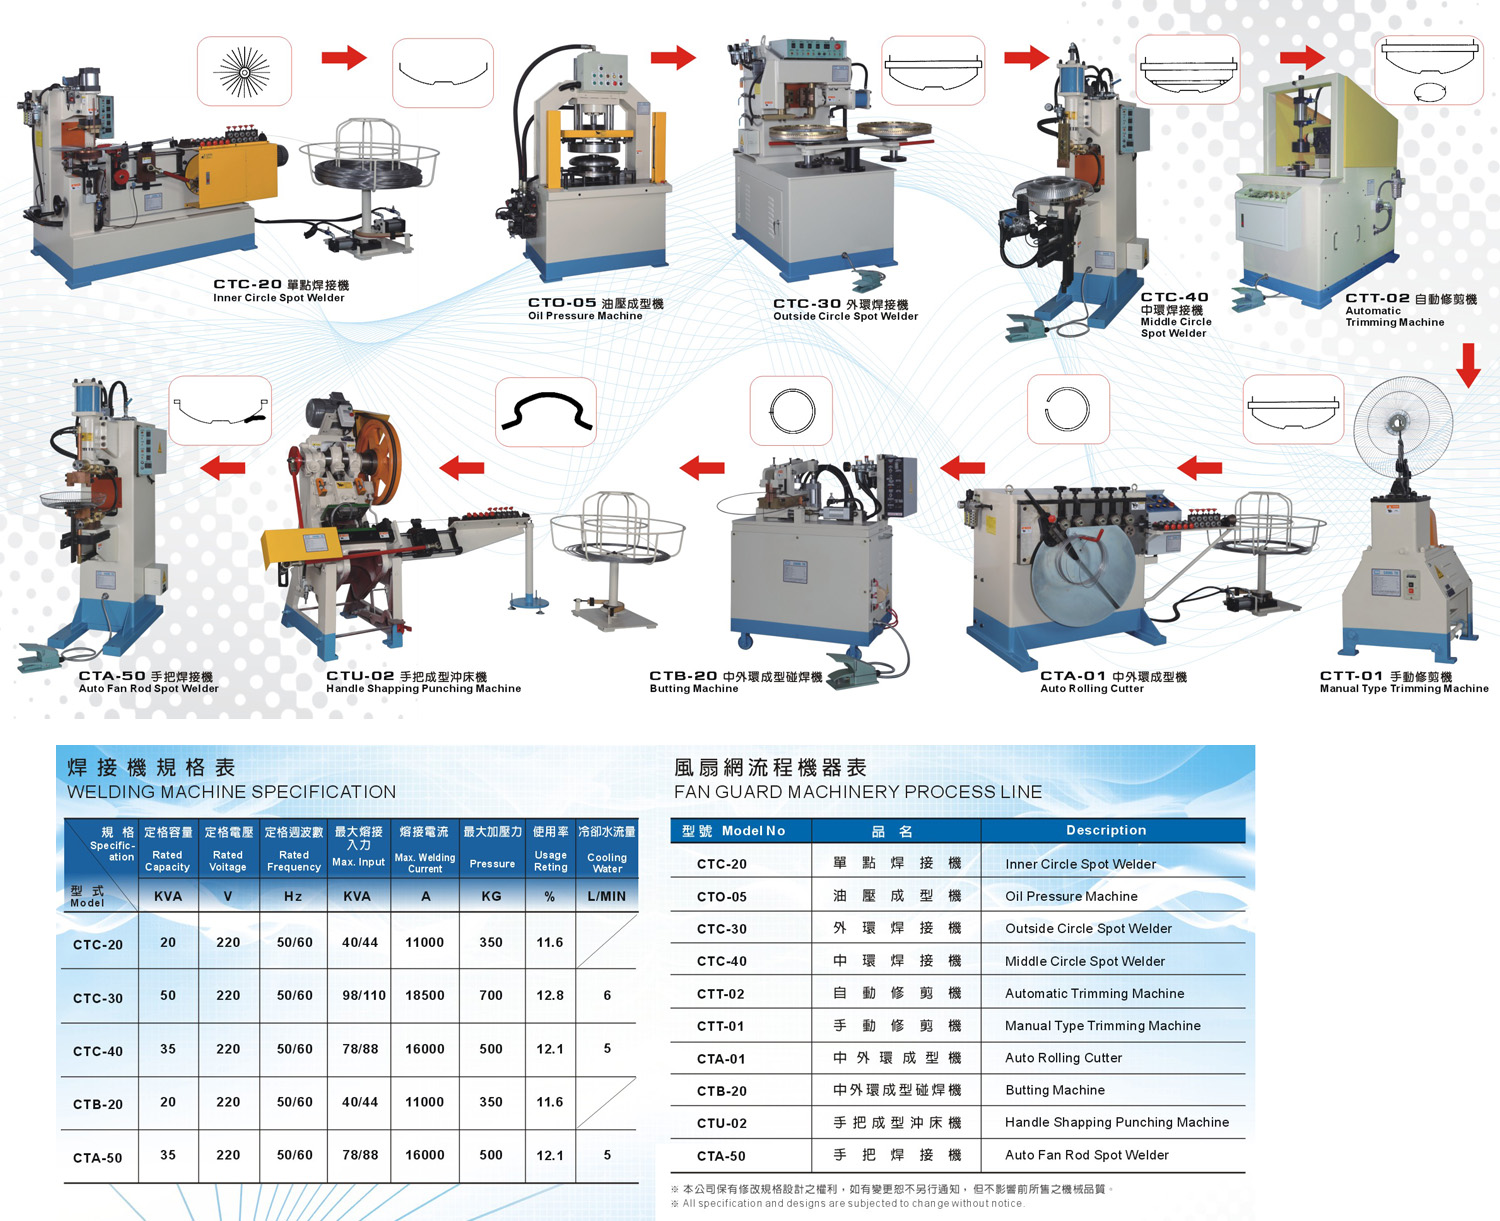 electric fan guard production flow chart   chung tie electricity    image friendly print